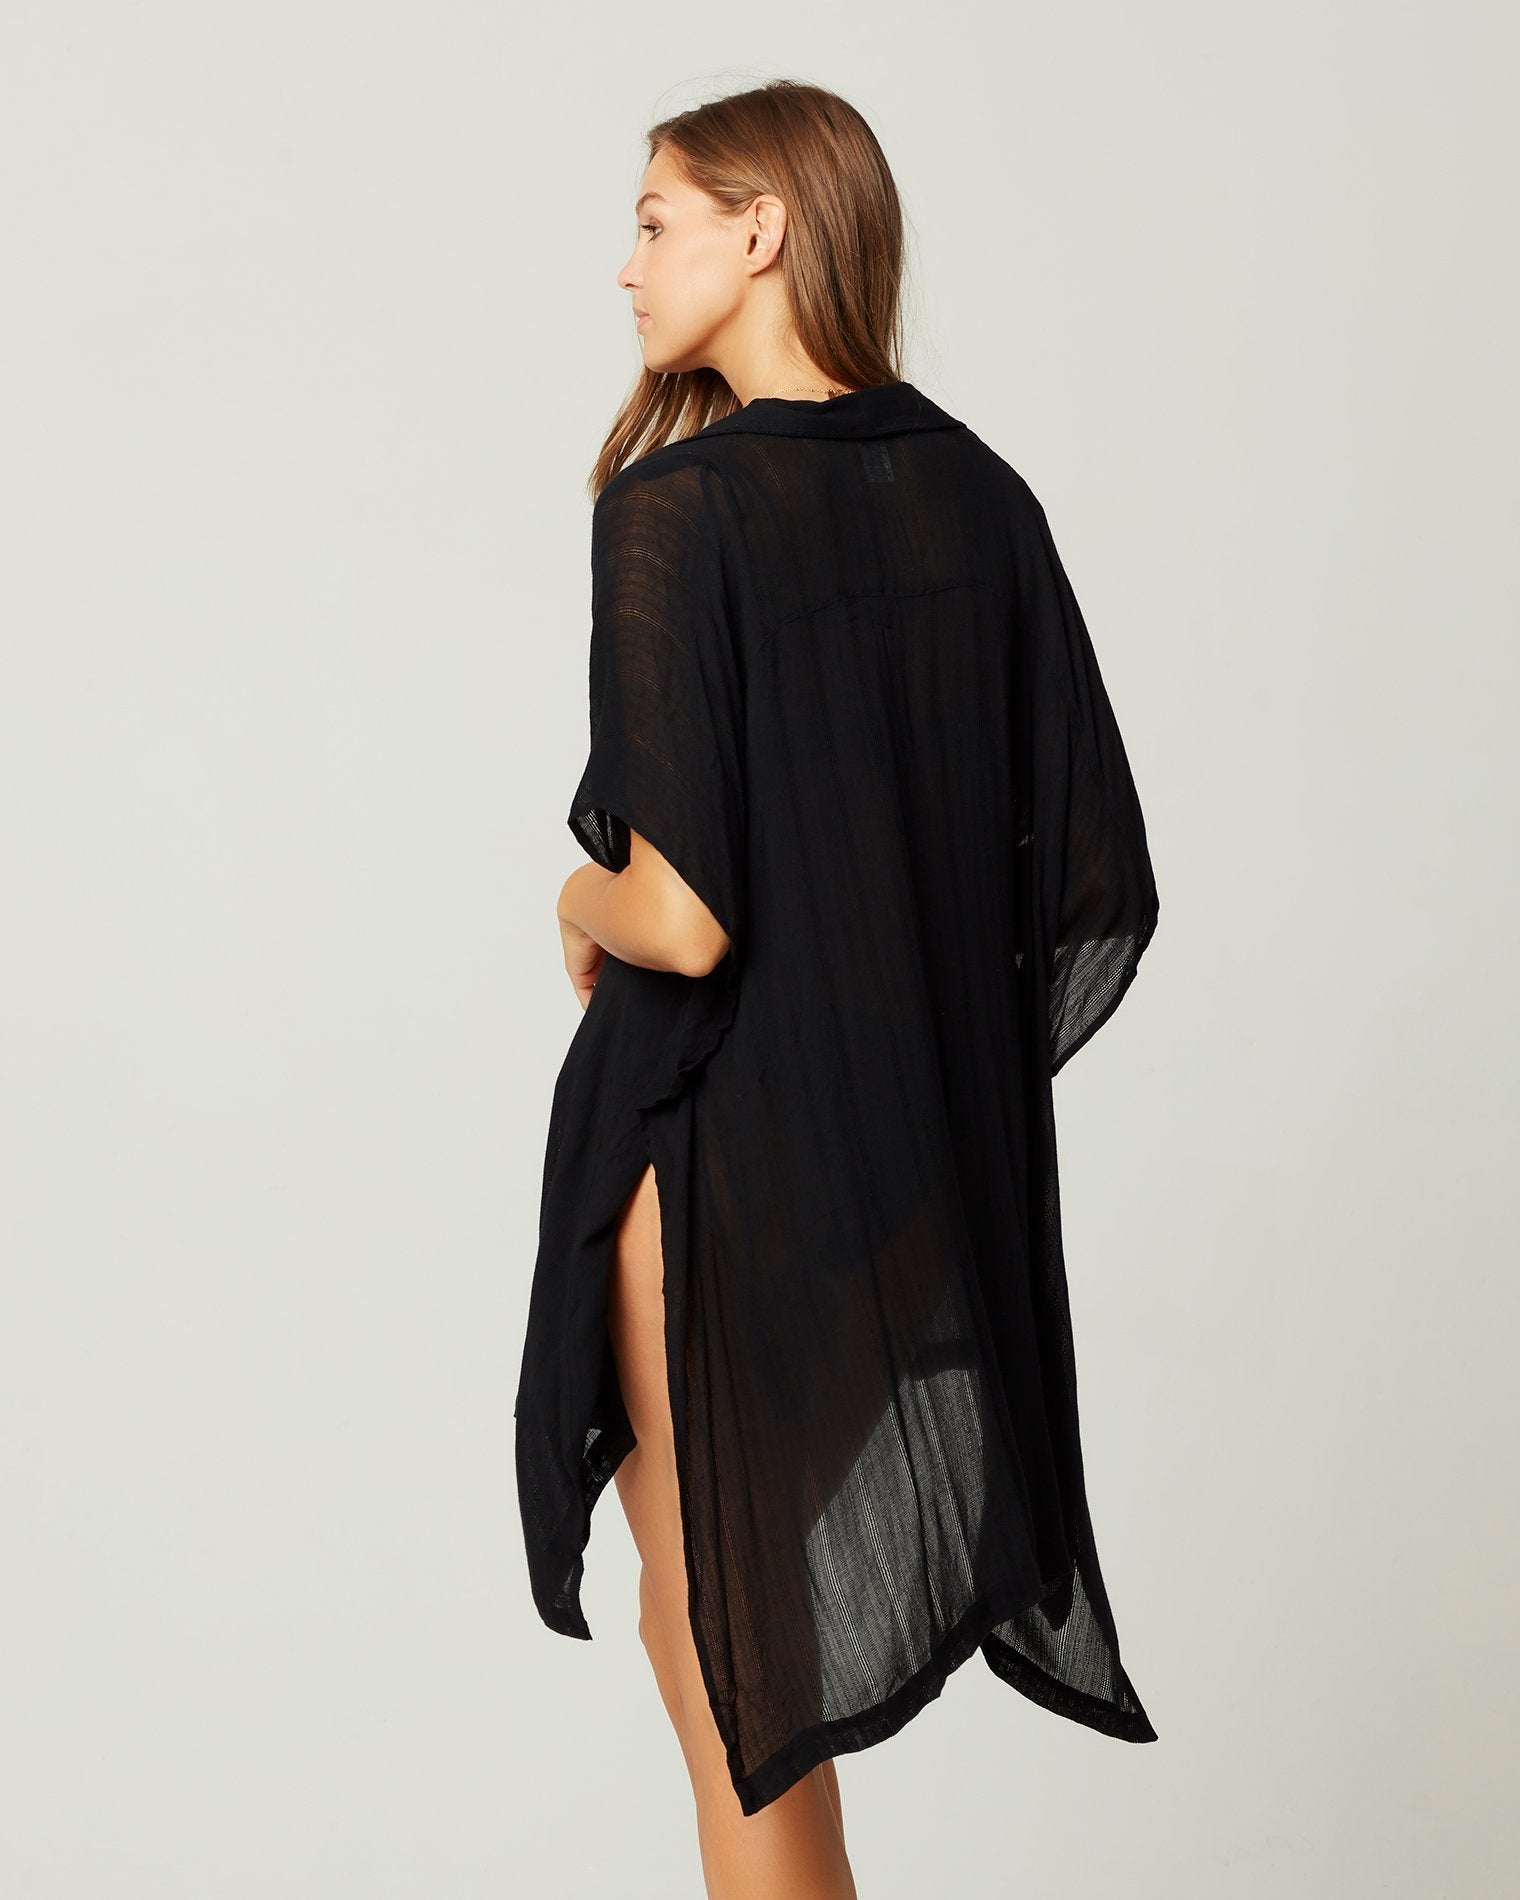 L*Space Anita Cover-Up in Black